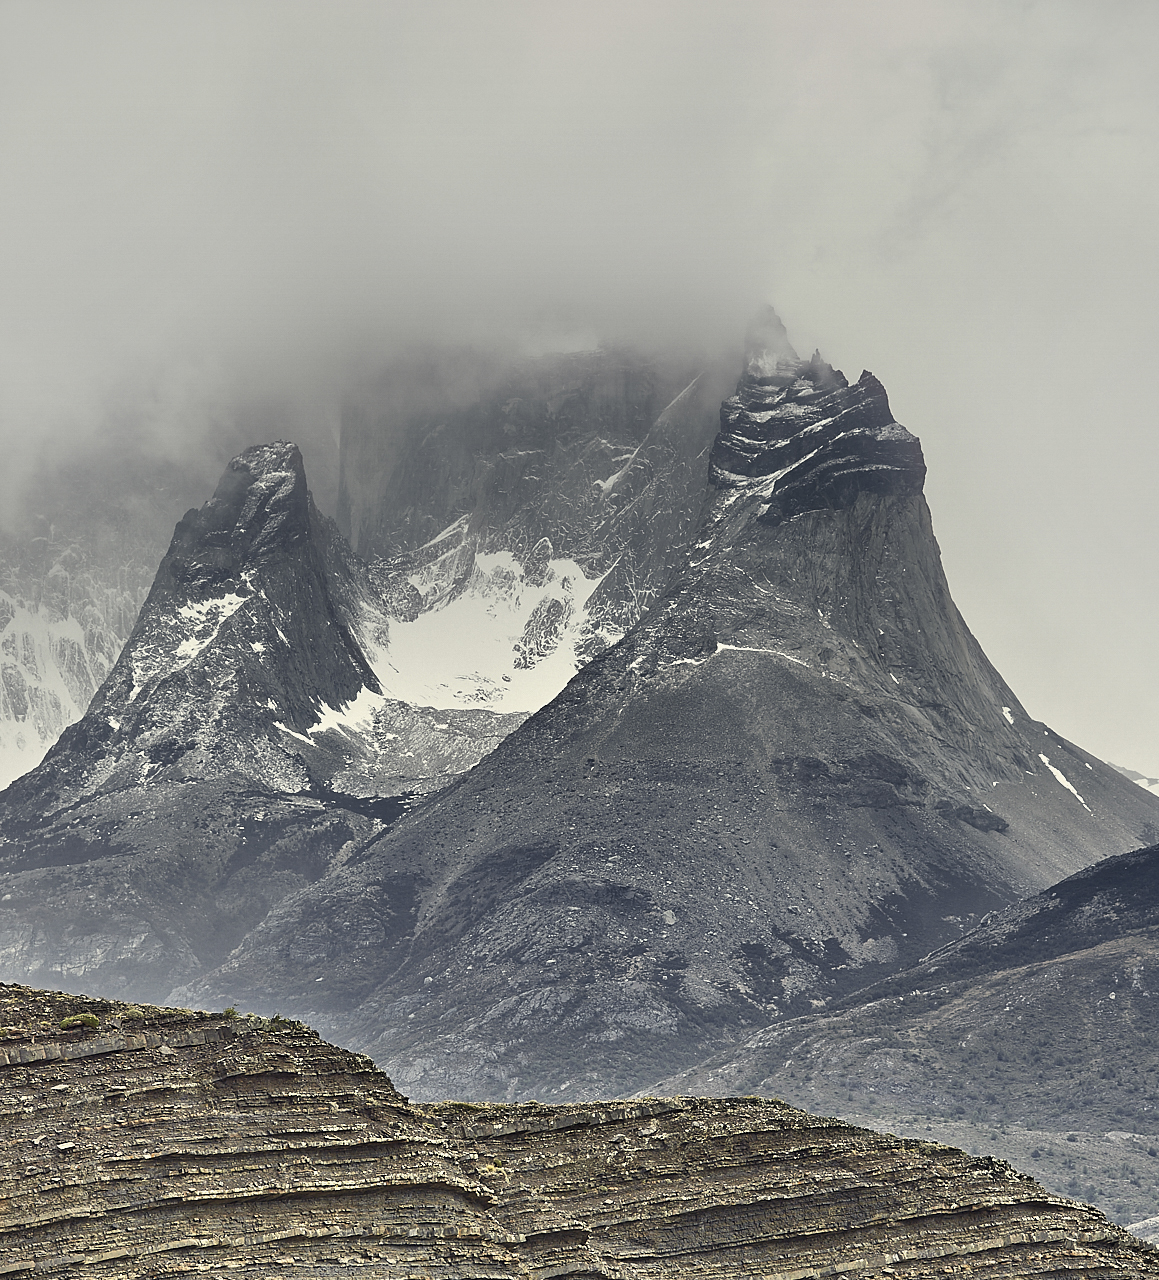 Patagonian peaks and clouds